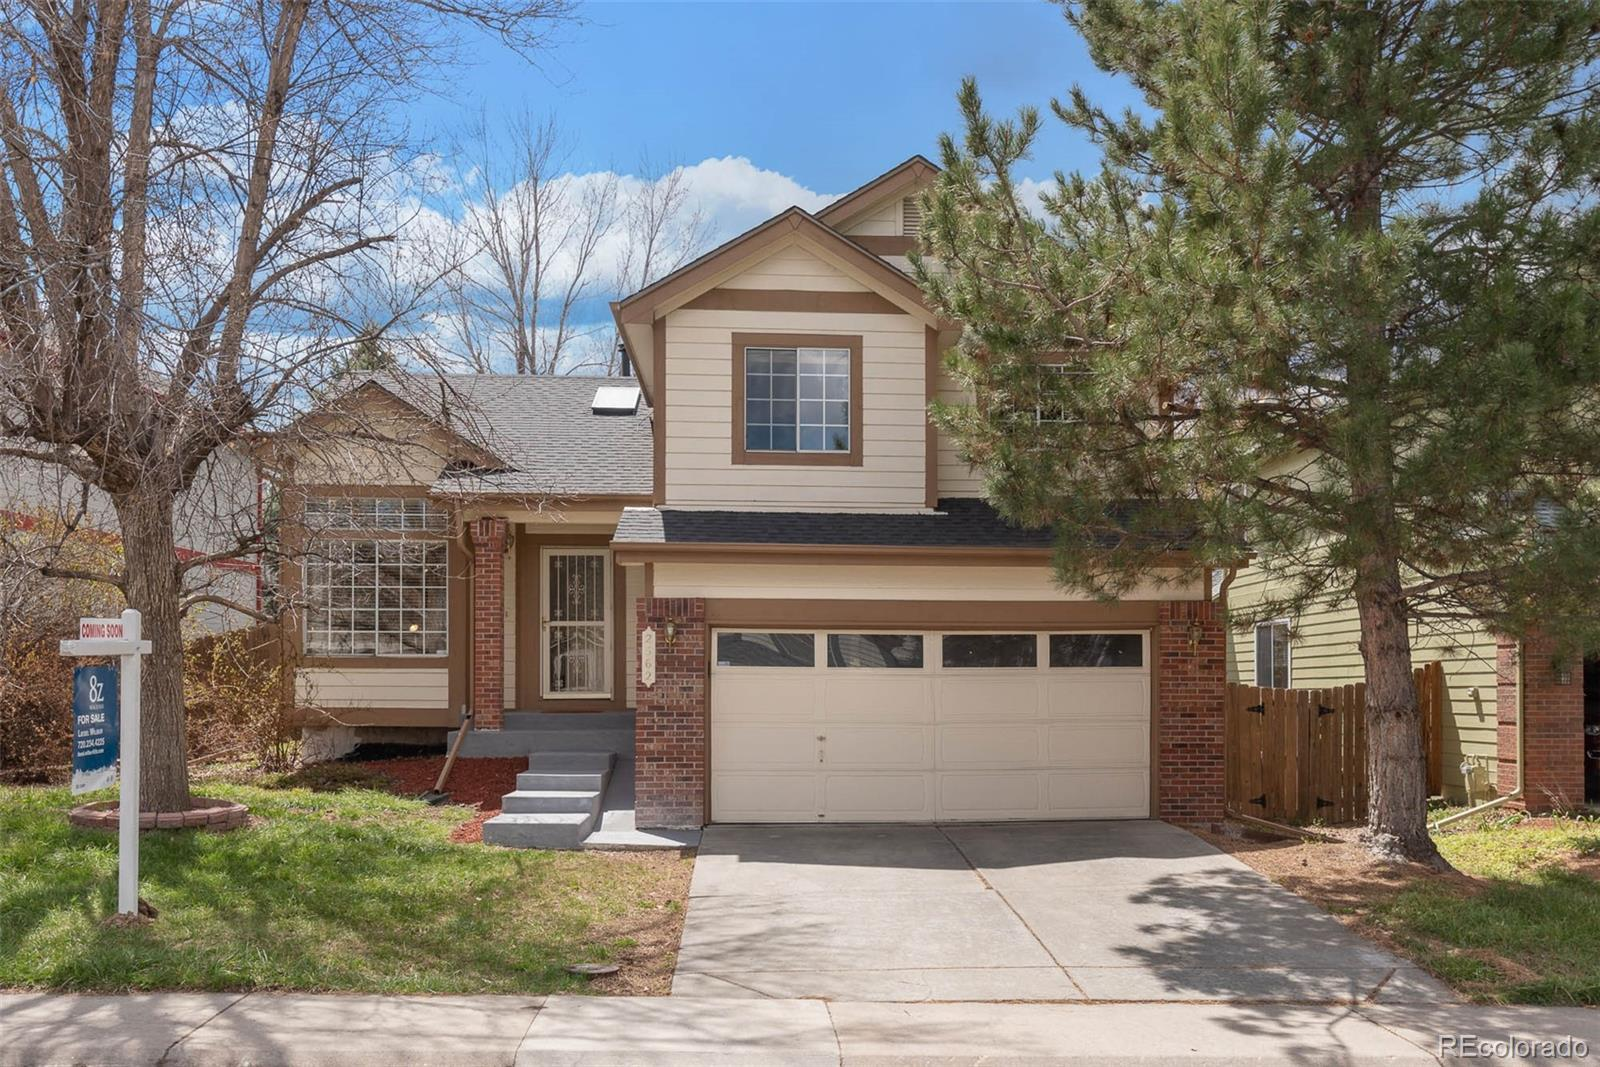 2562 W 110th Avenue, Westminster, CO 80234 - #: 9758318